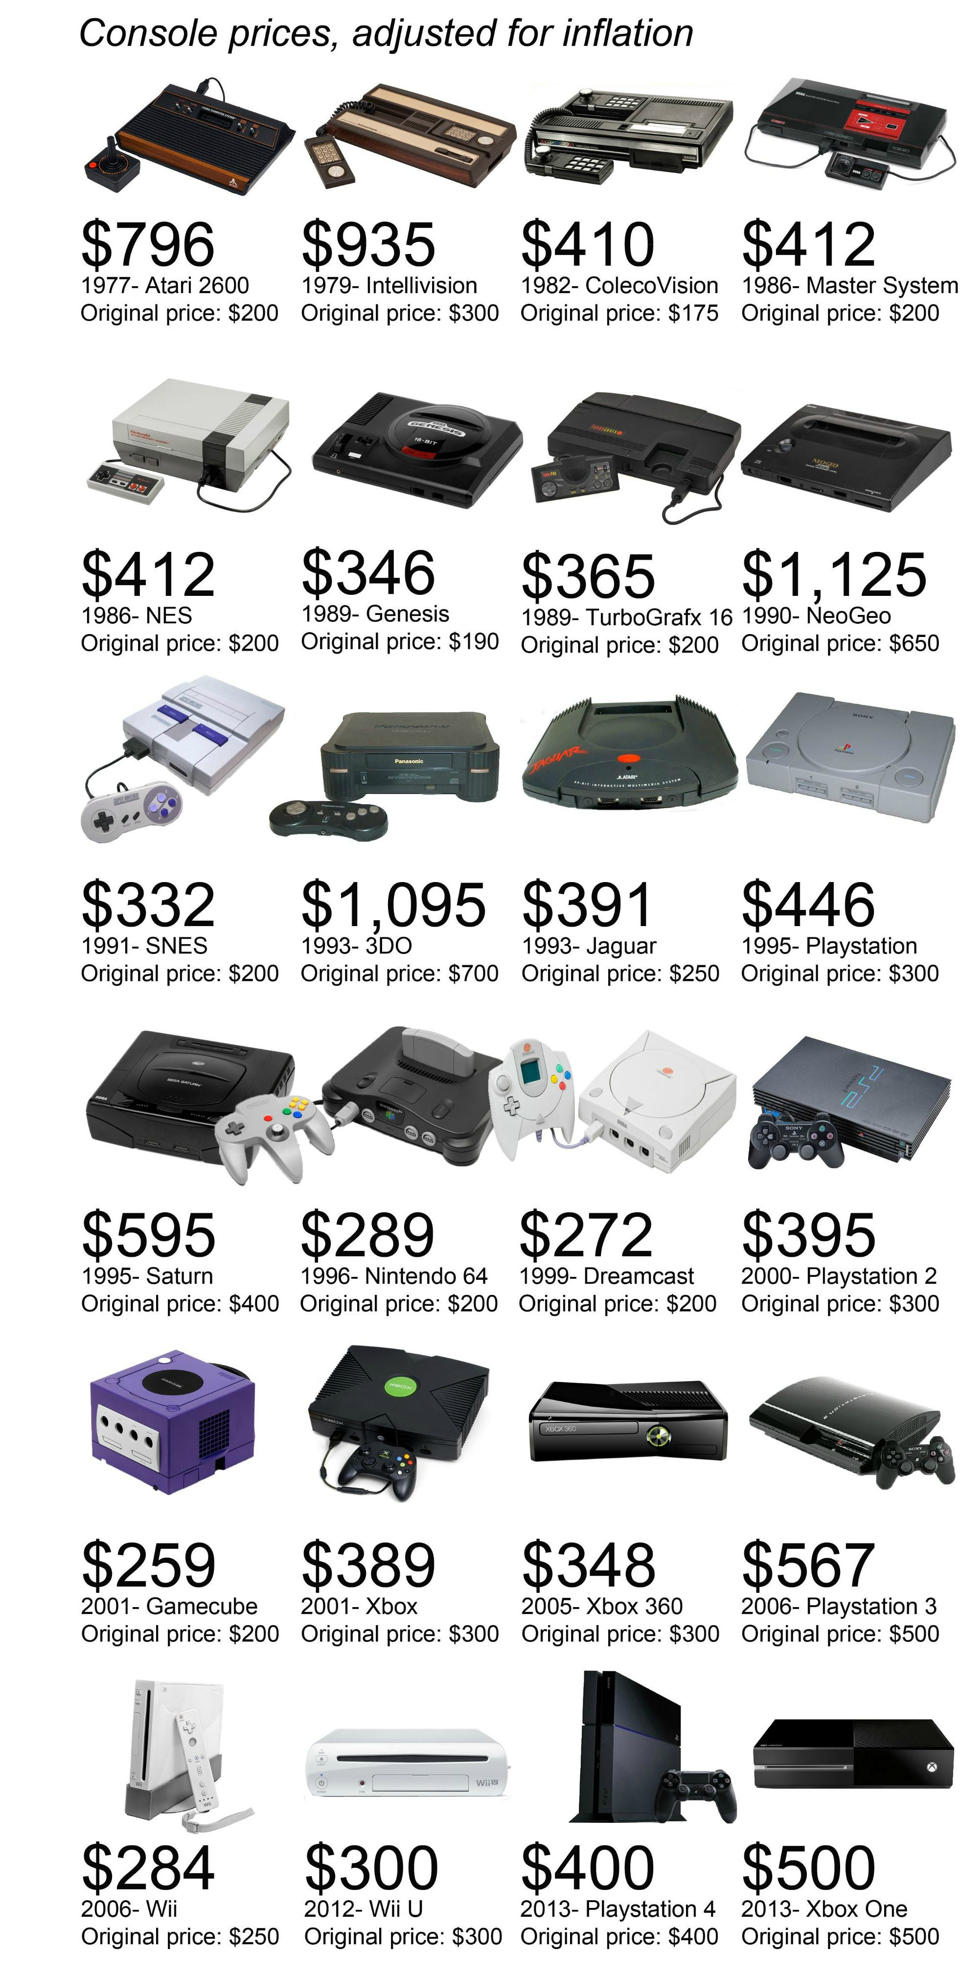 console-prices-adjusted-for-inflation